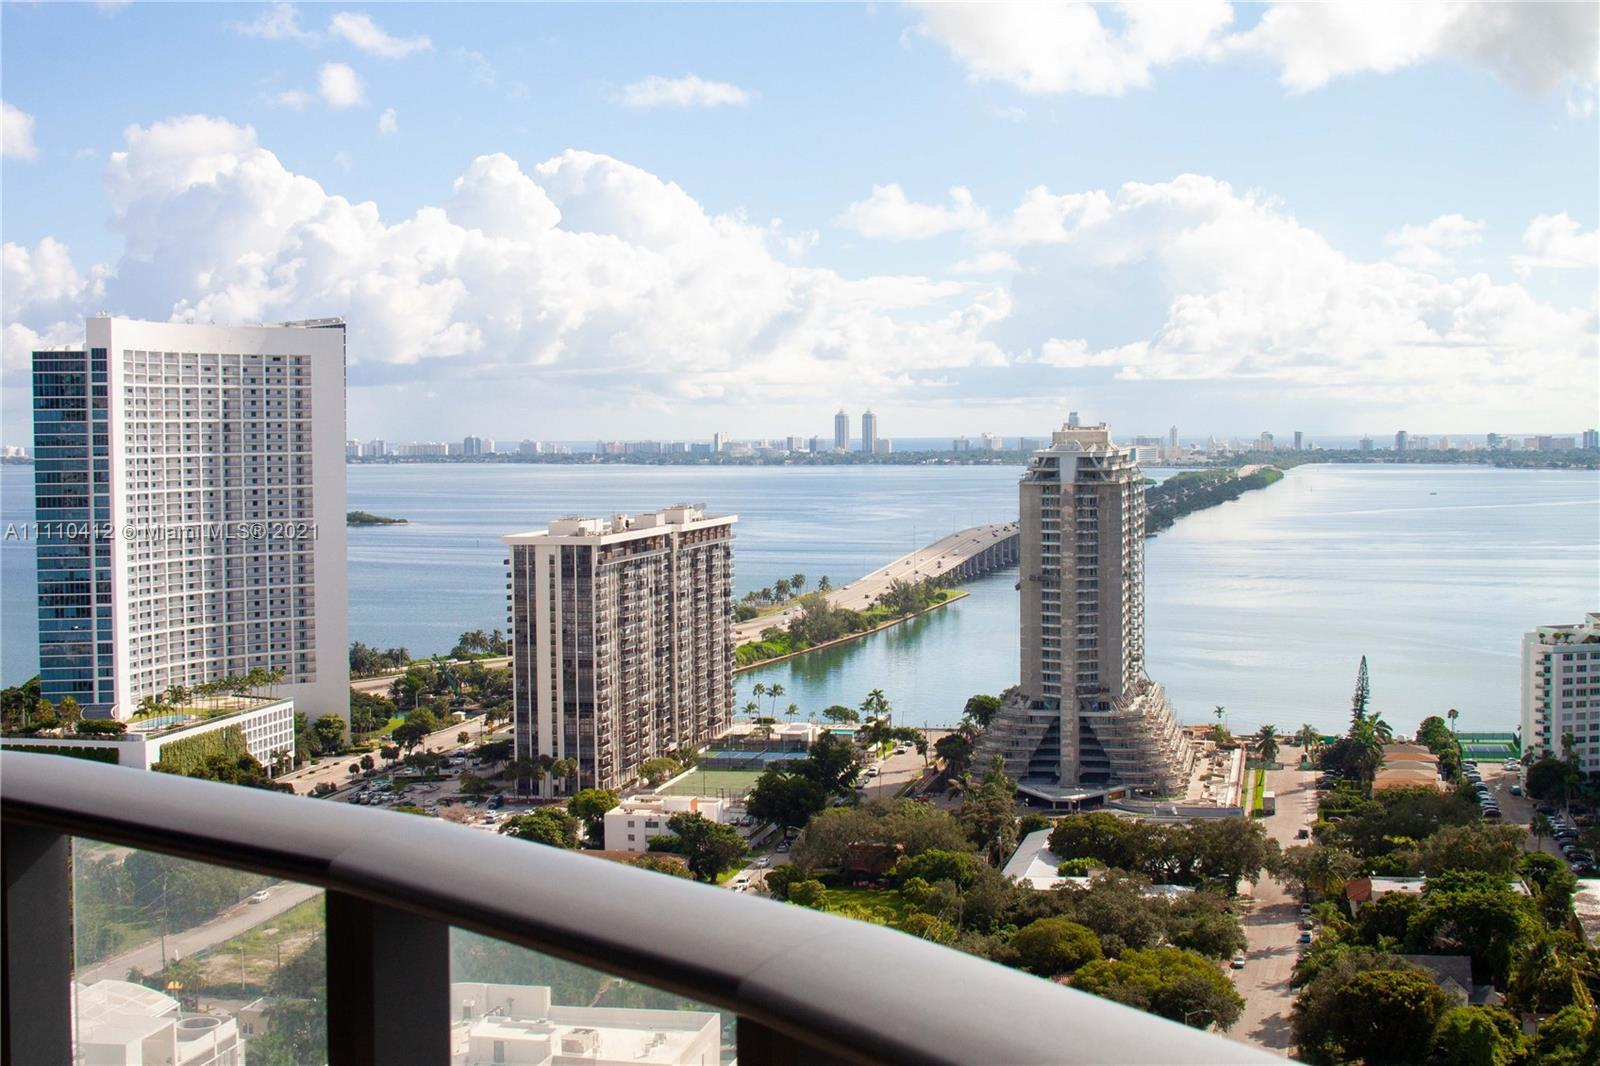 IMPECCABLE 2 BEDROOMS/2 BATHROOMS UNIT WITH BREATHTAKING CITY AND BAY VIEWS IN THE HEART OF MIDTOWN